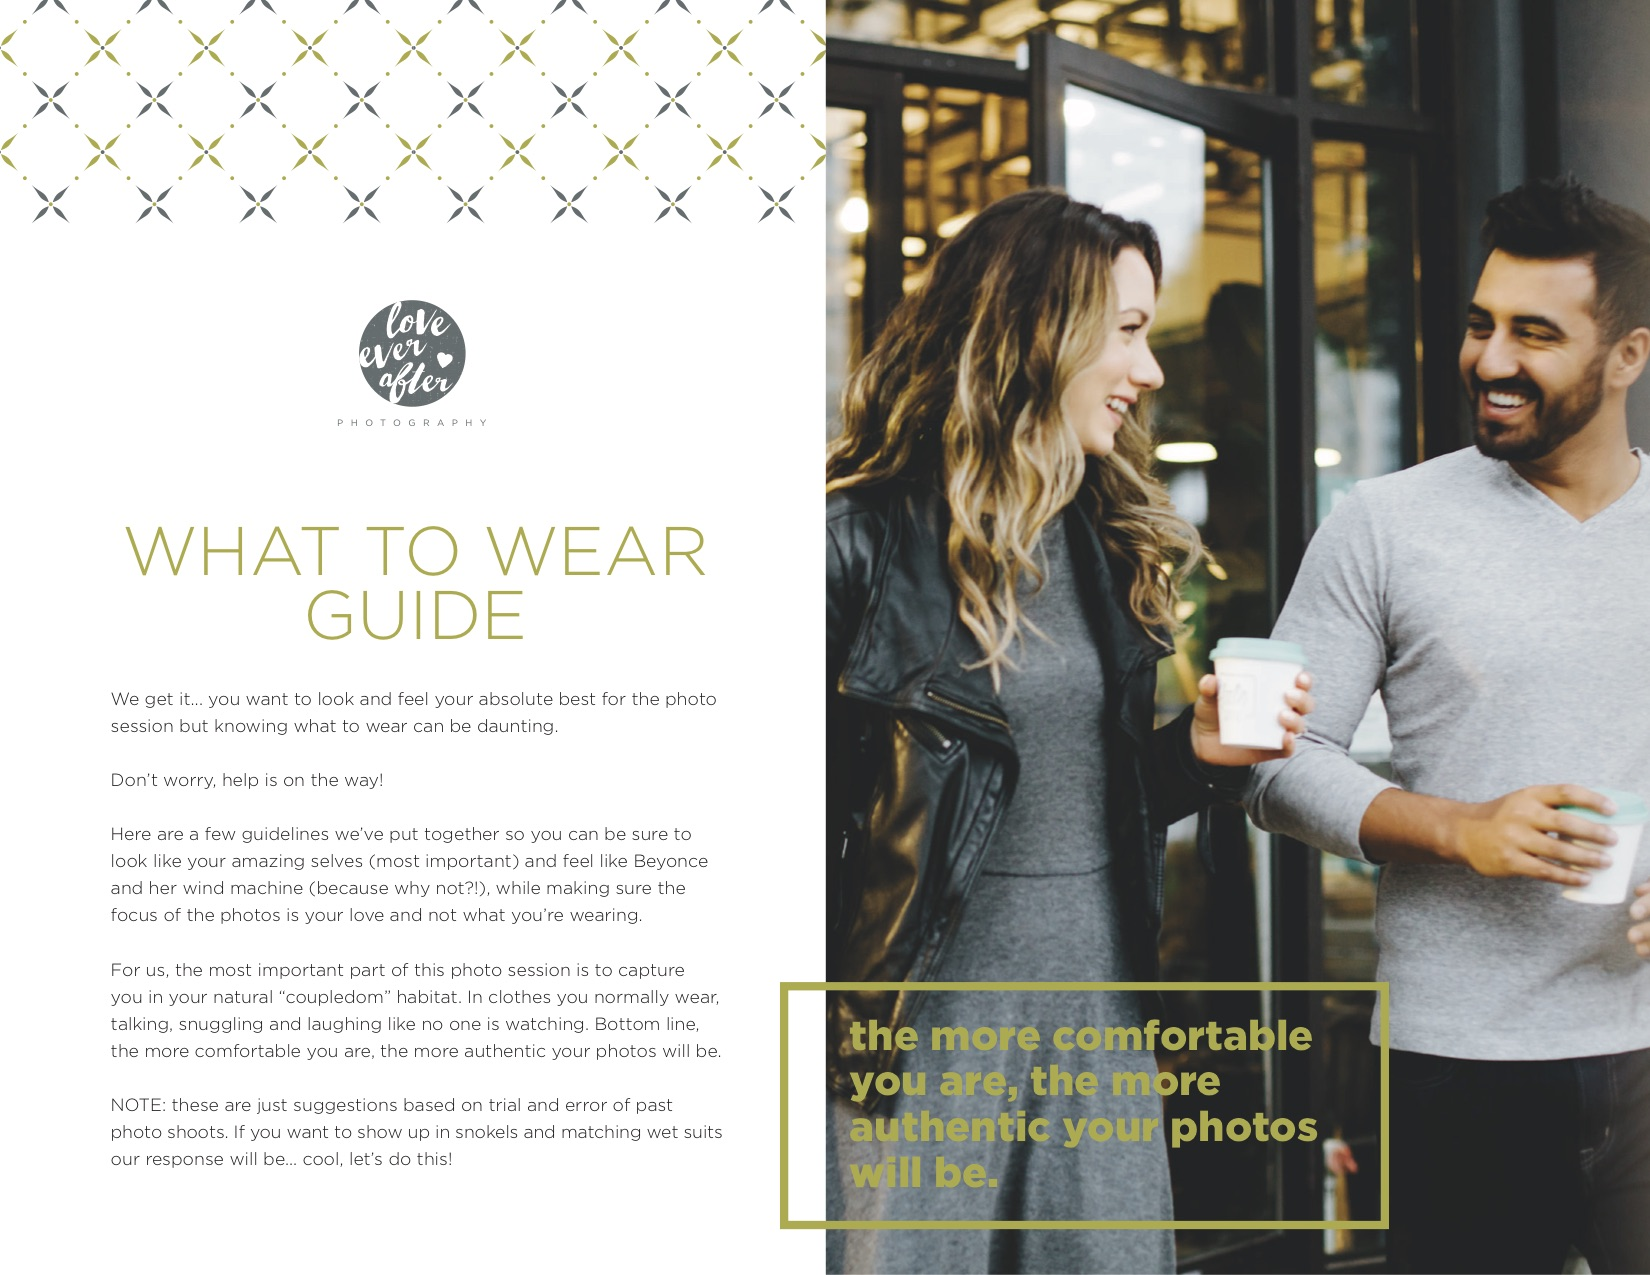 LEAP_What to Wear Guide 2018_updated.jpg